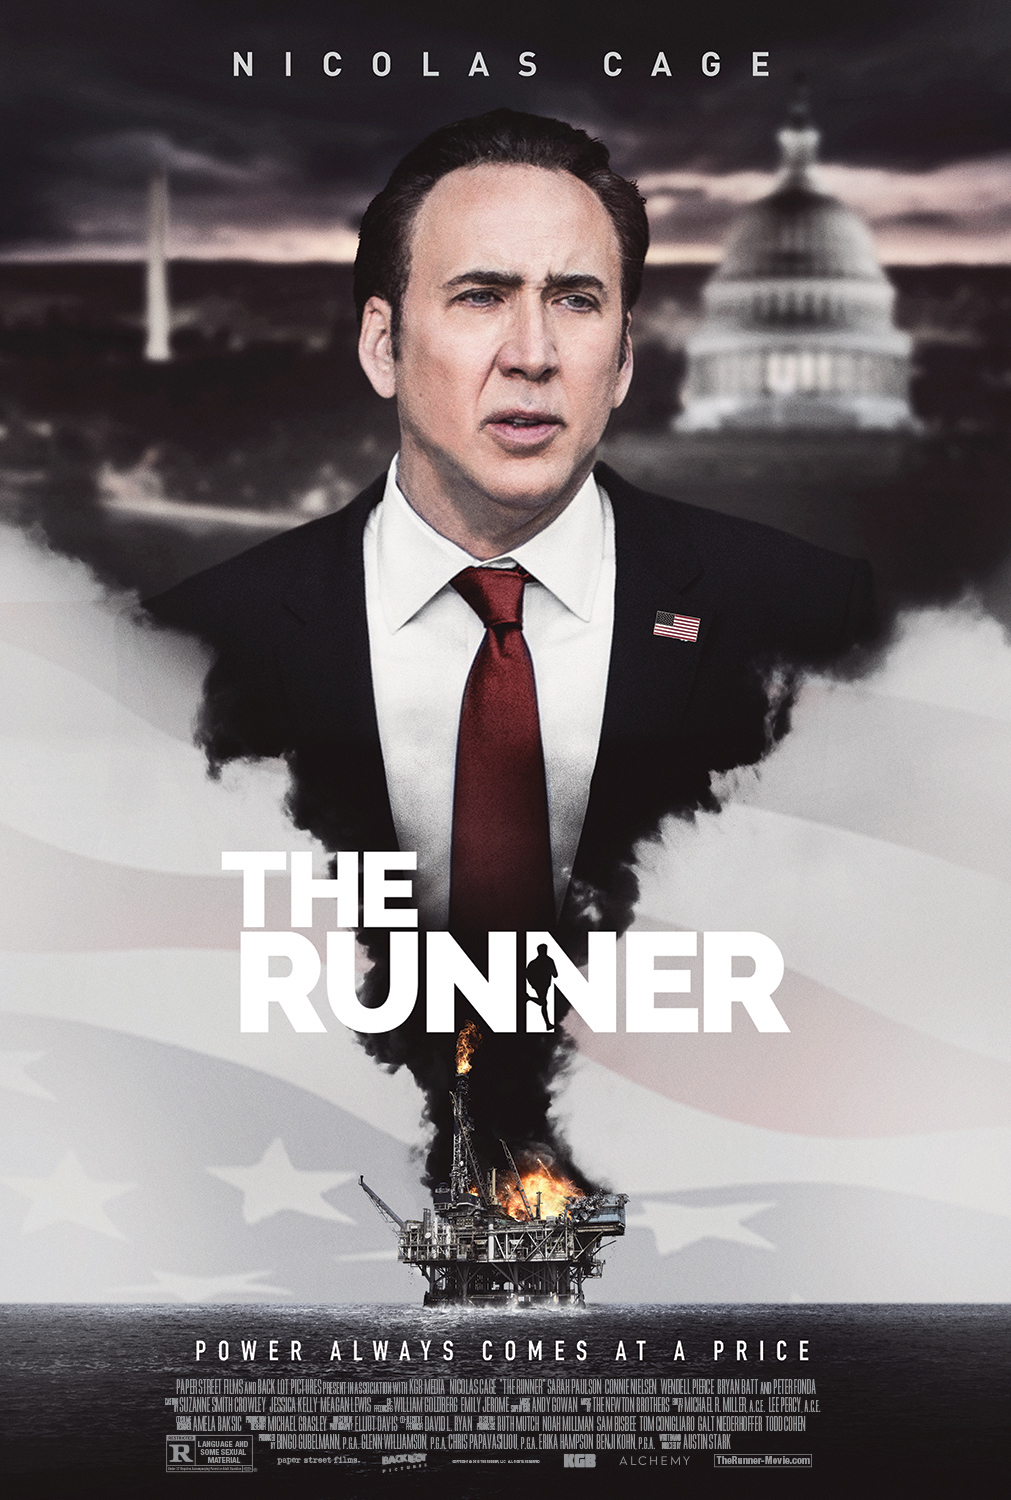 Nicolas Cage in The Runner (2015)